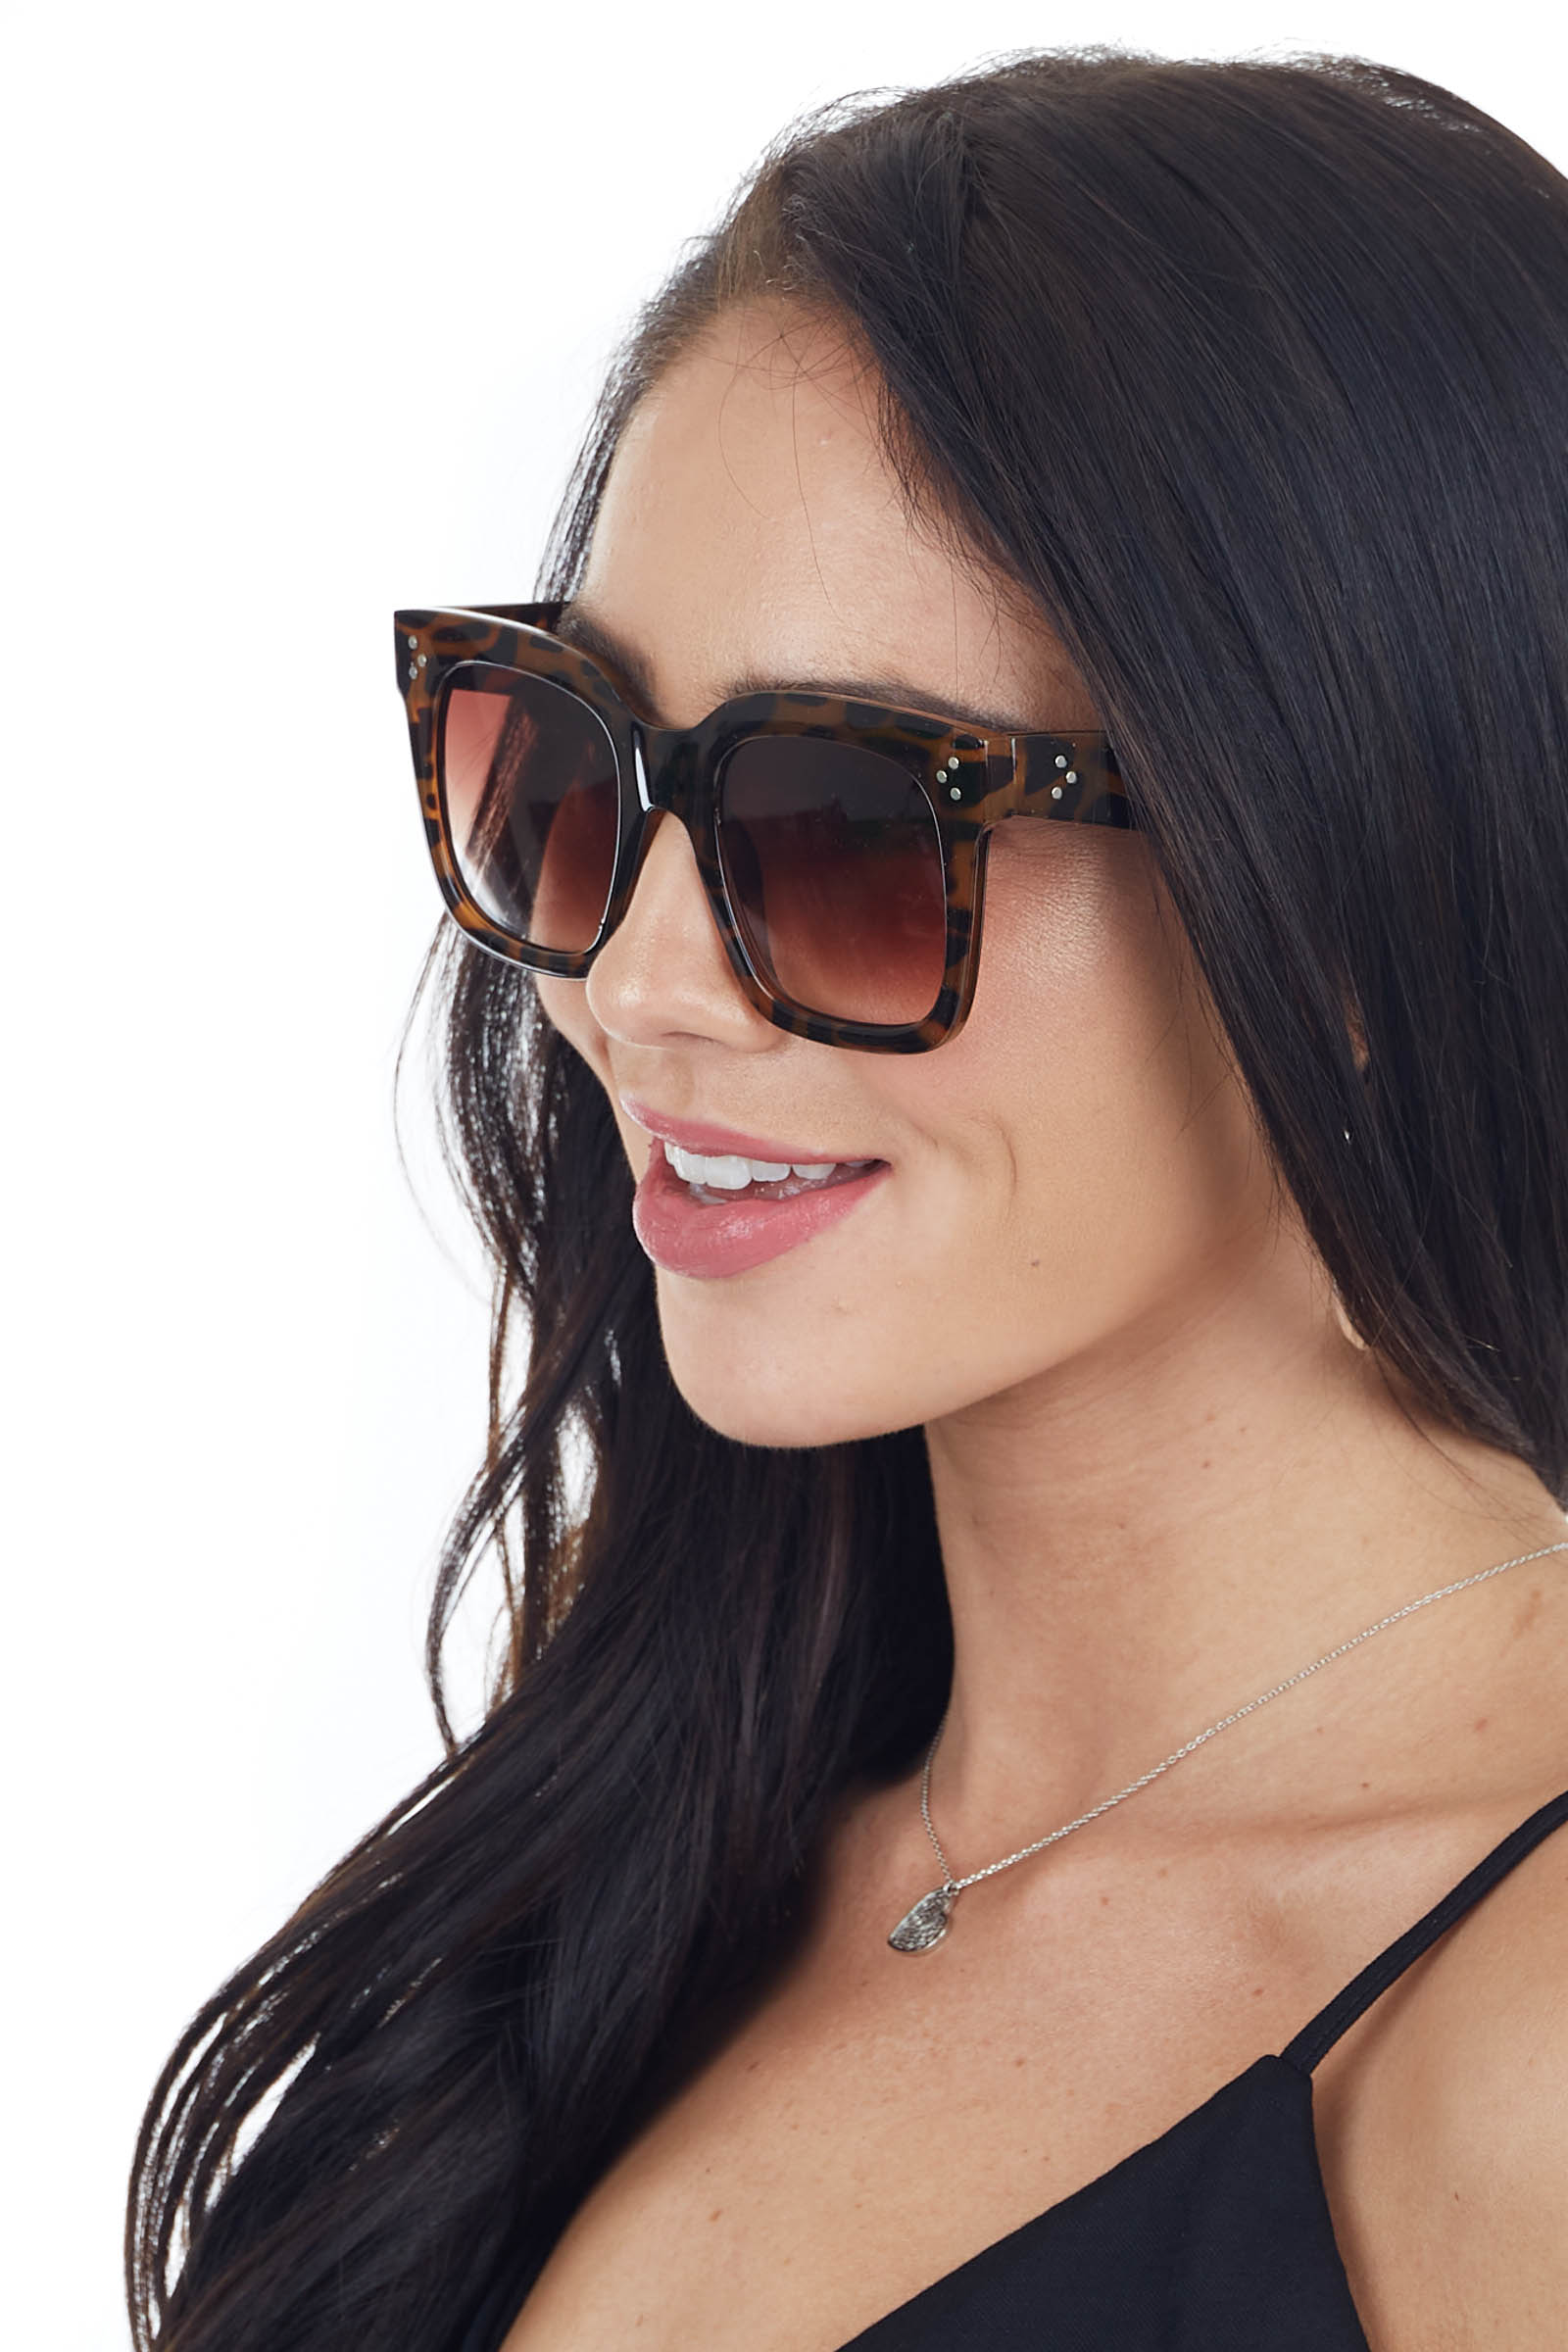 Cognac Tortoise Shell Oversized Square Sunglasses with Studs